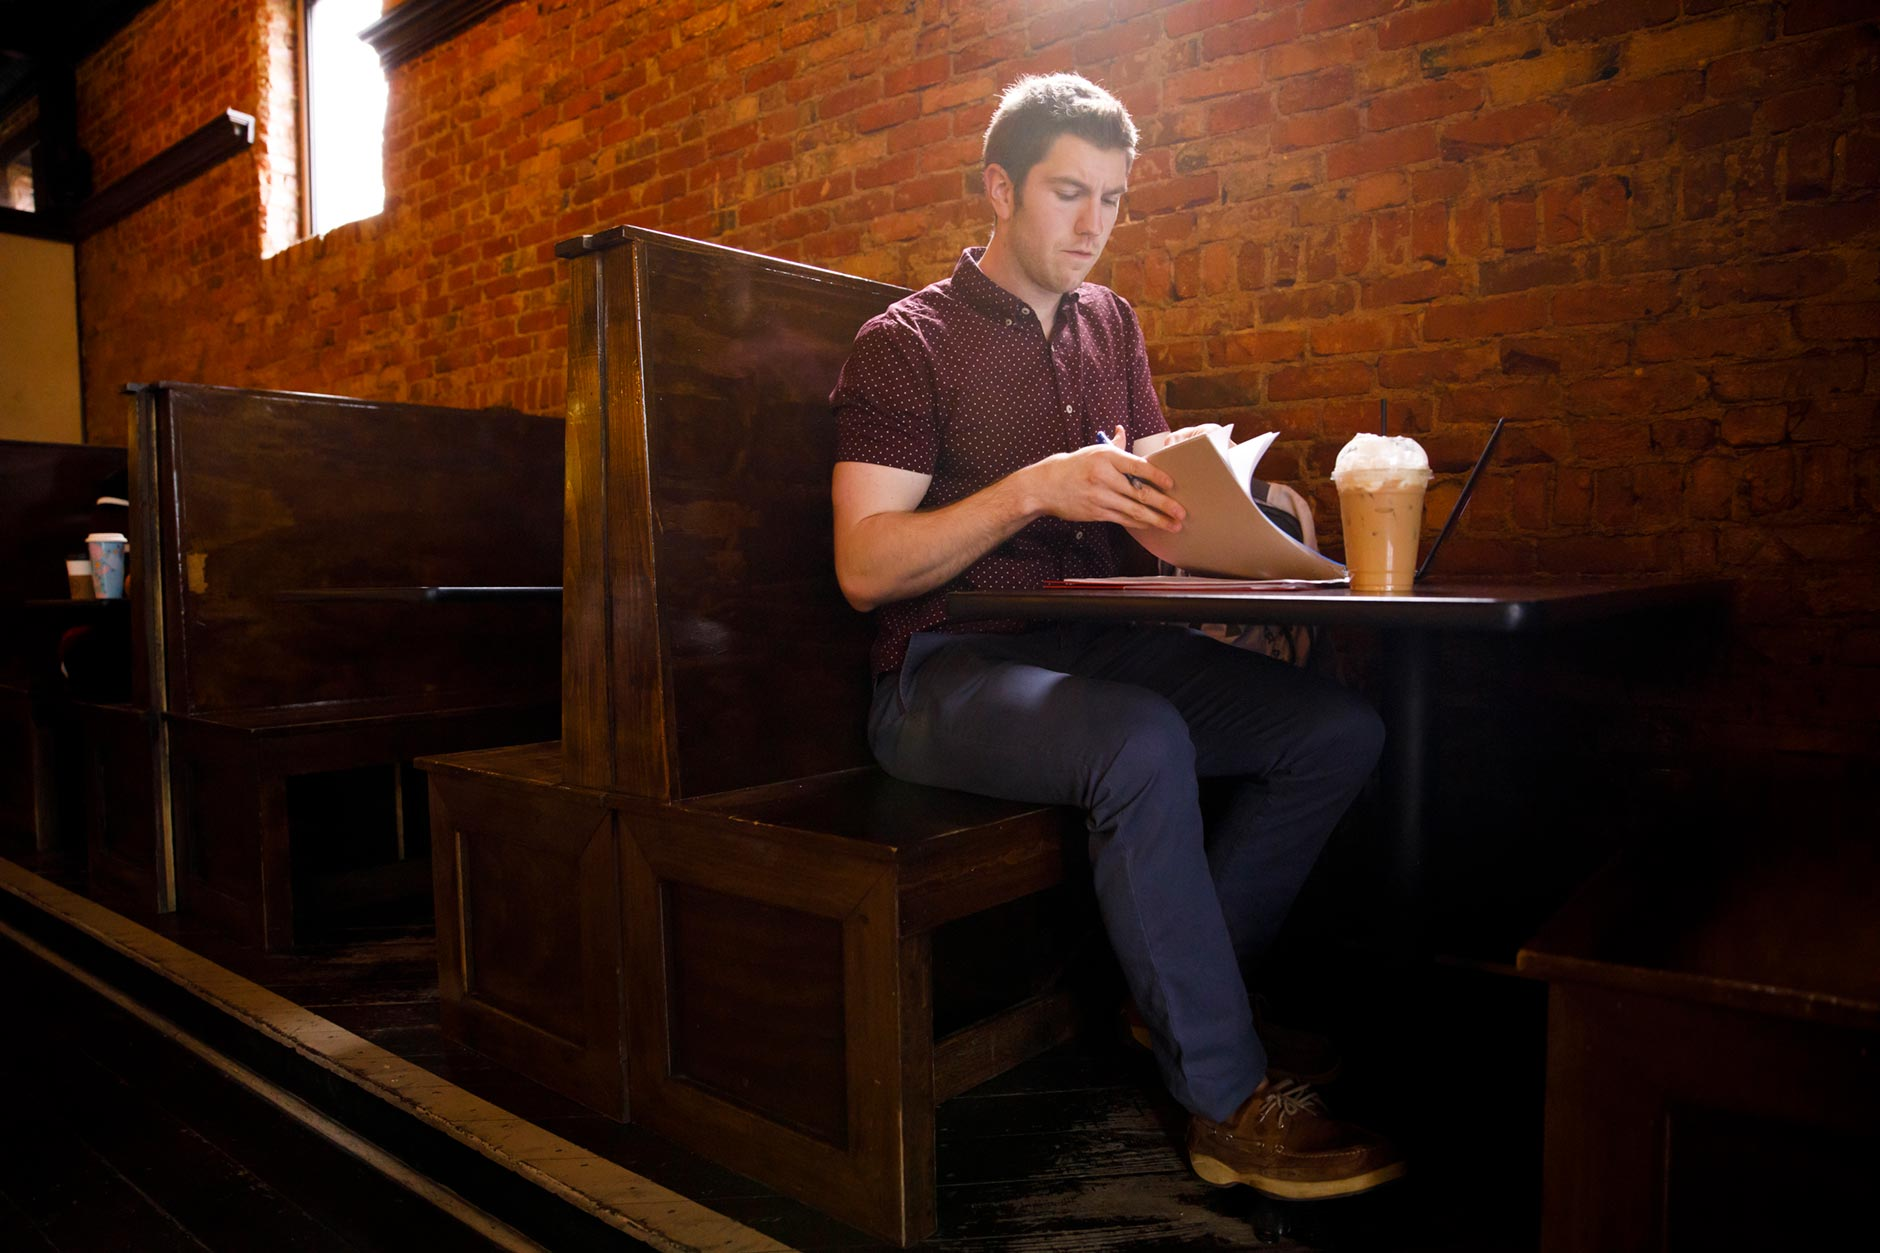 Justin Westfall, a graduating IU Online student, works on homework at the Coffee Pot in Greenville, Ohio on Friday, April 6, 2018. (James Brosher/IU Communications)